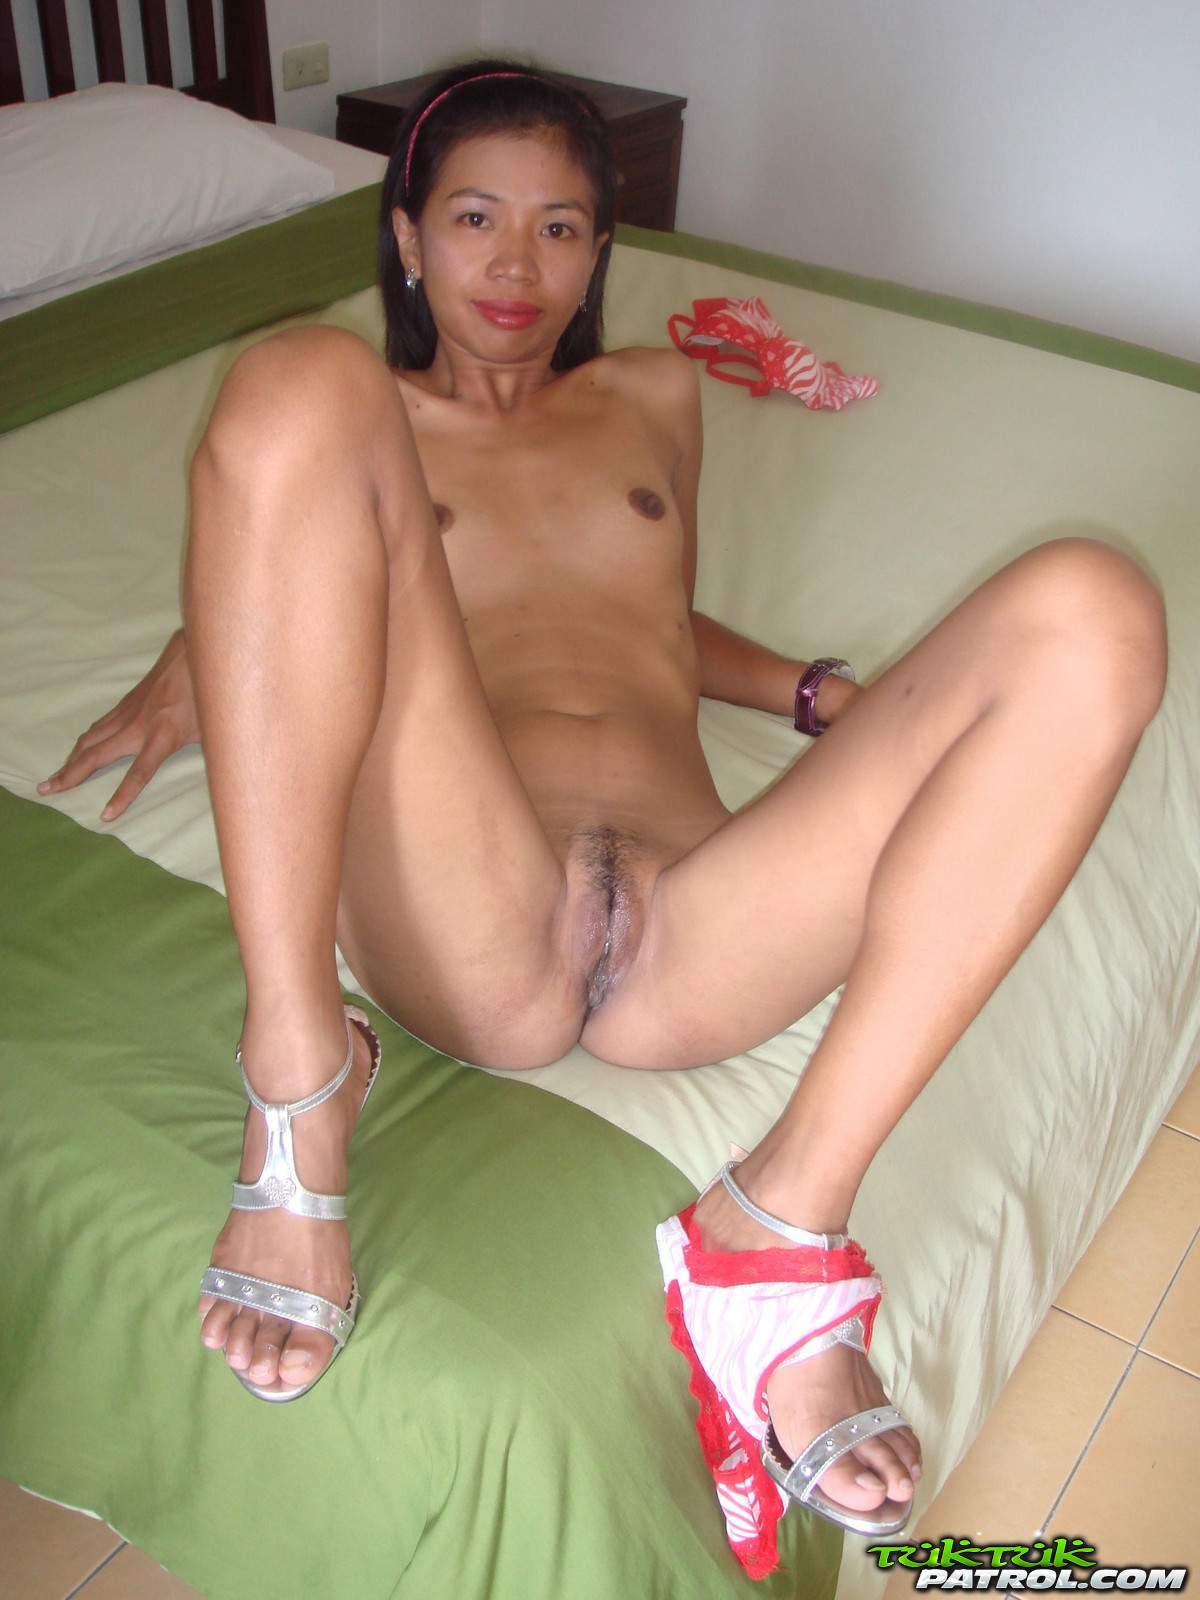 Thai girl naked pic opinion